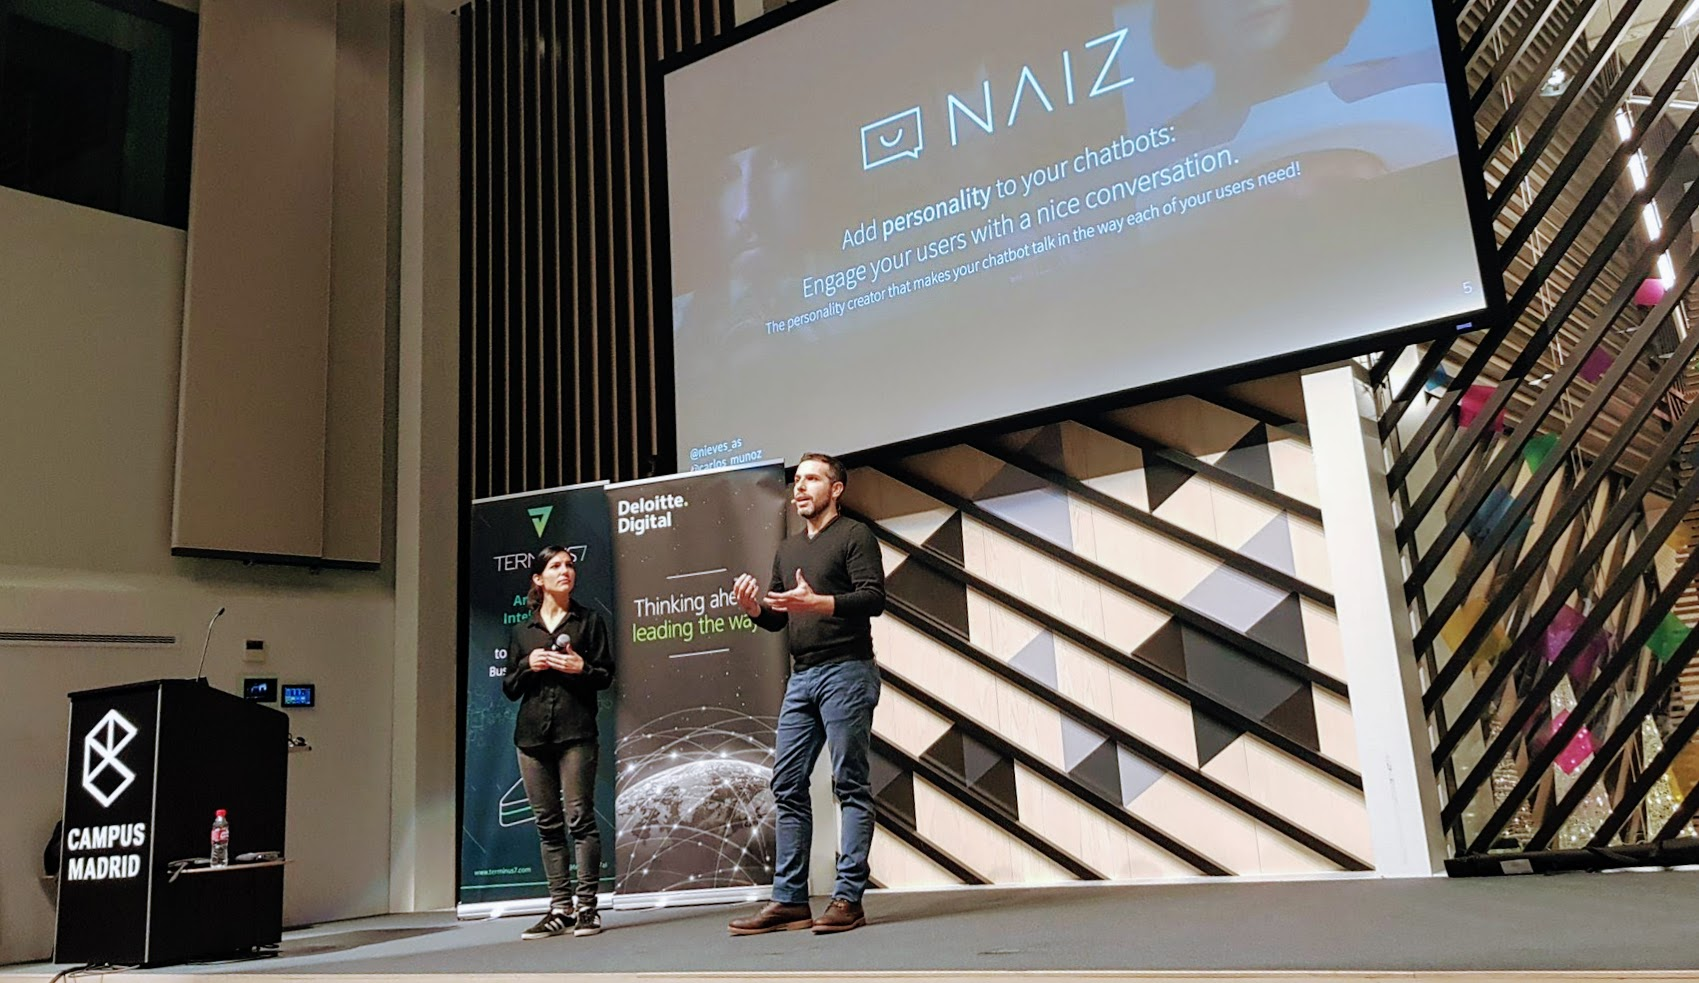 Carlos and Nieves talking about NAIZ at madrid.city.ai event in Google Campus Madrid.